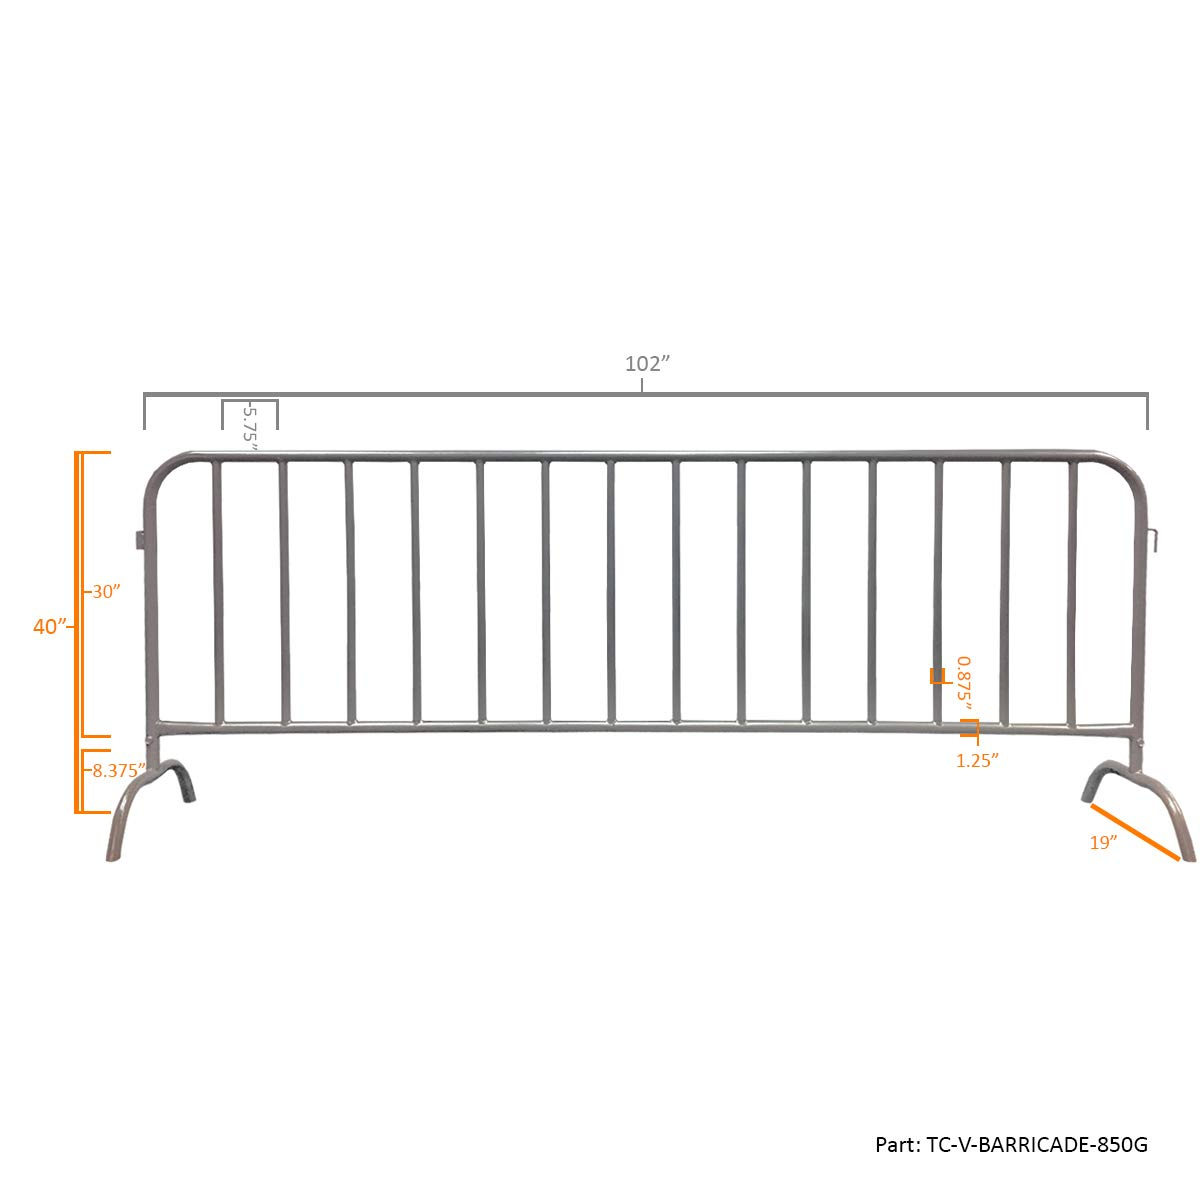 Electriduct 8.5 Feet Heavy Duty Steel Barrier Interlocking Crowd Control Barricade with Galvanized Finish (Pack of 10 Barricades) by Electriduct (Image #3)